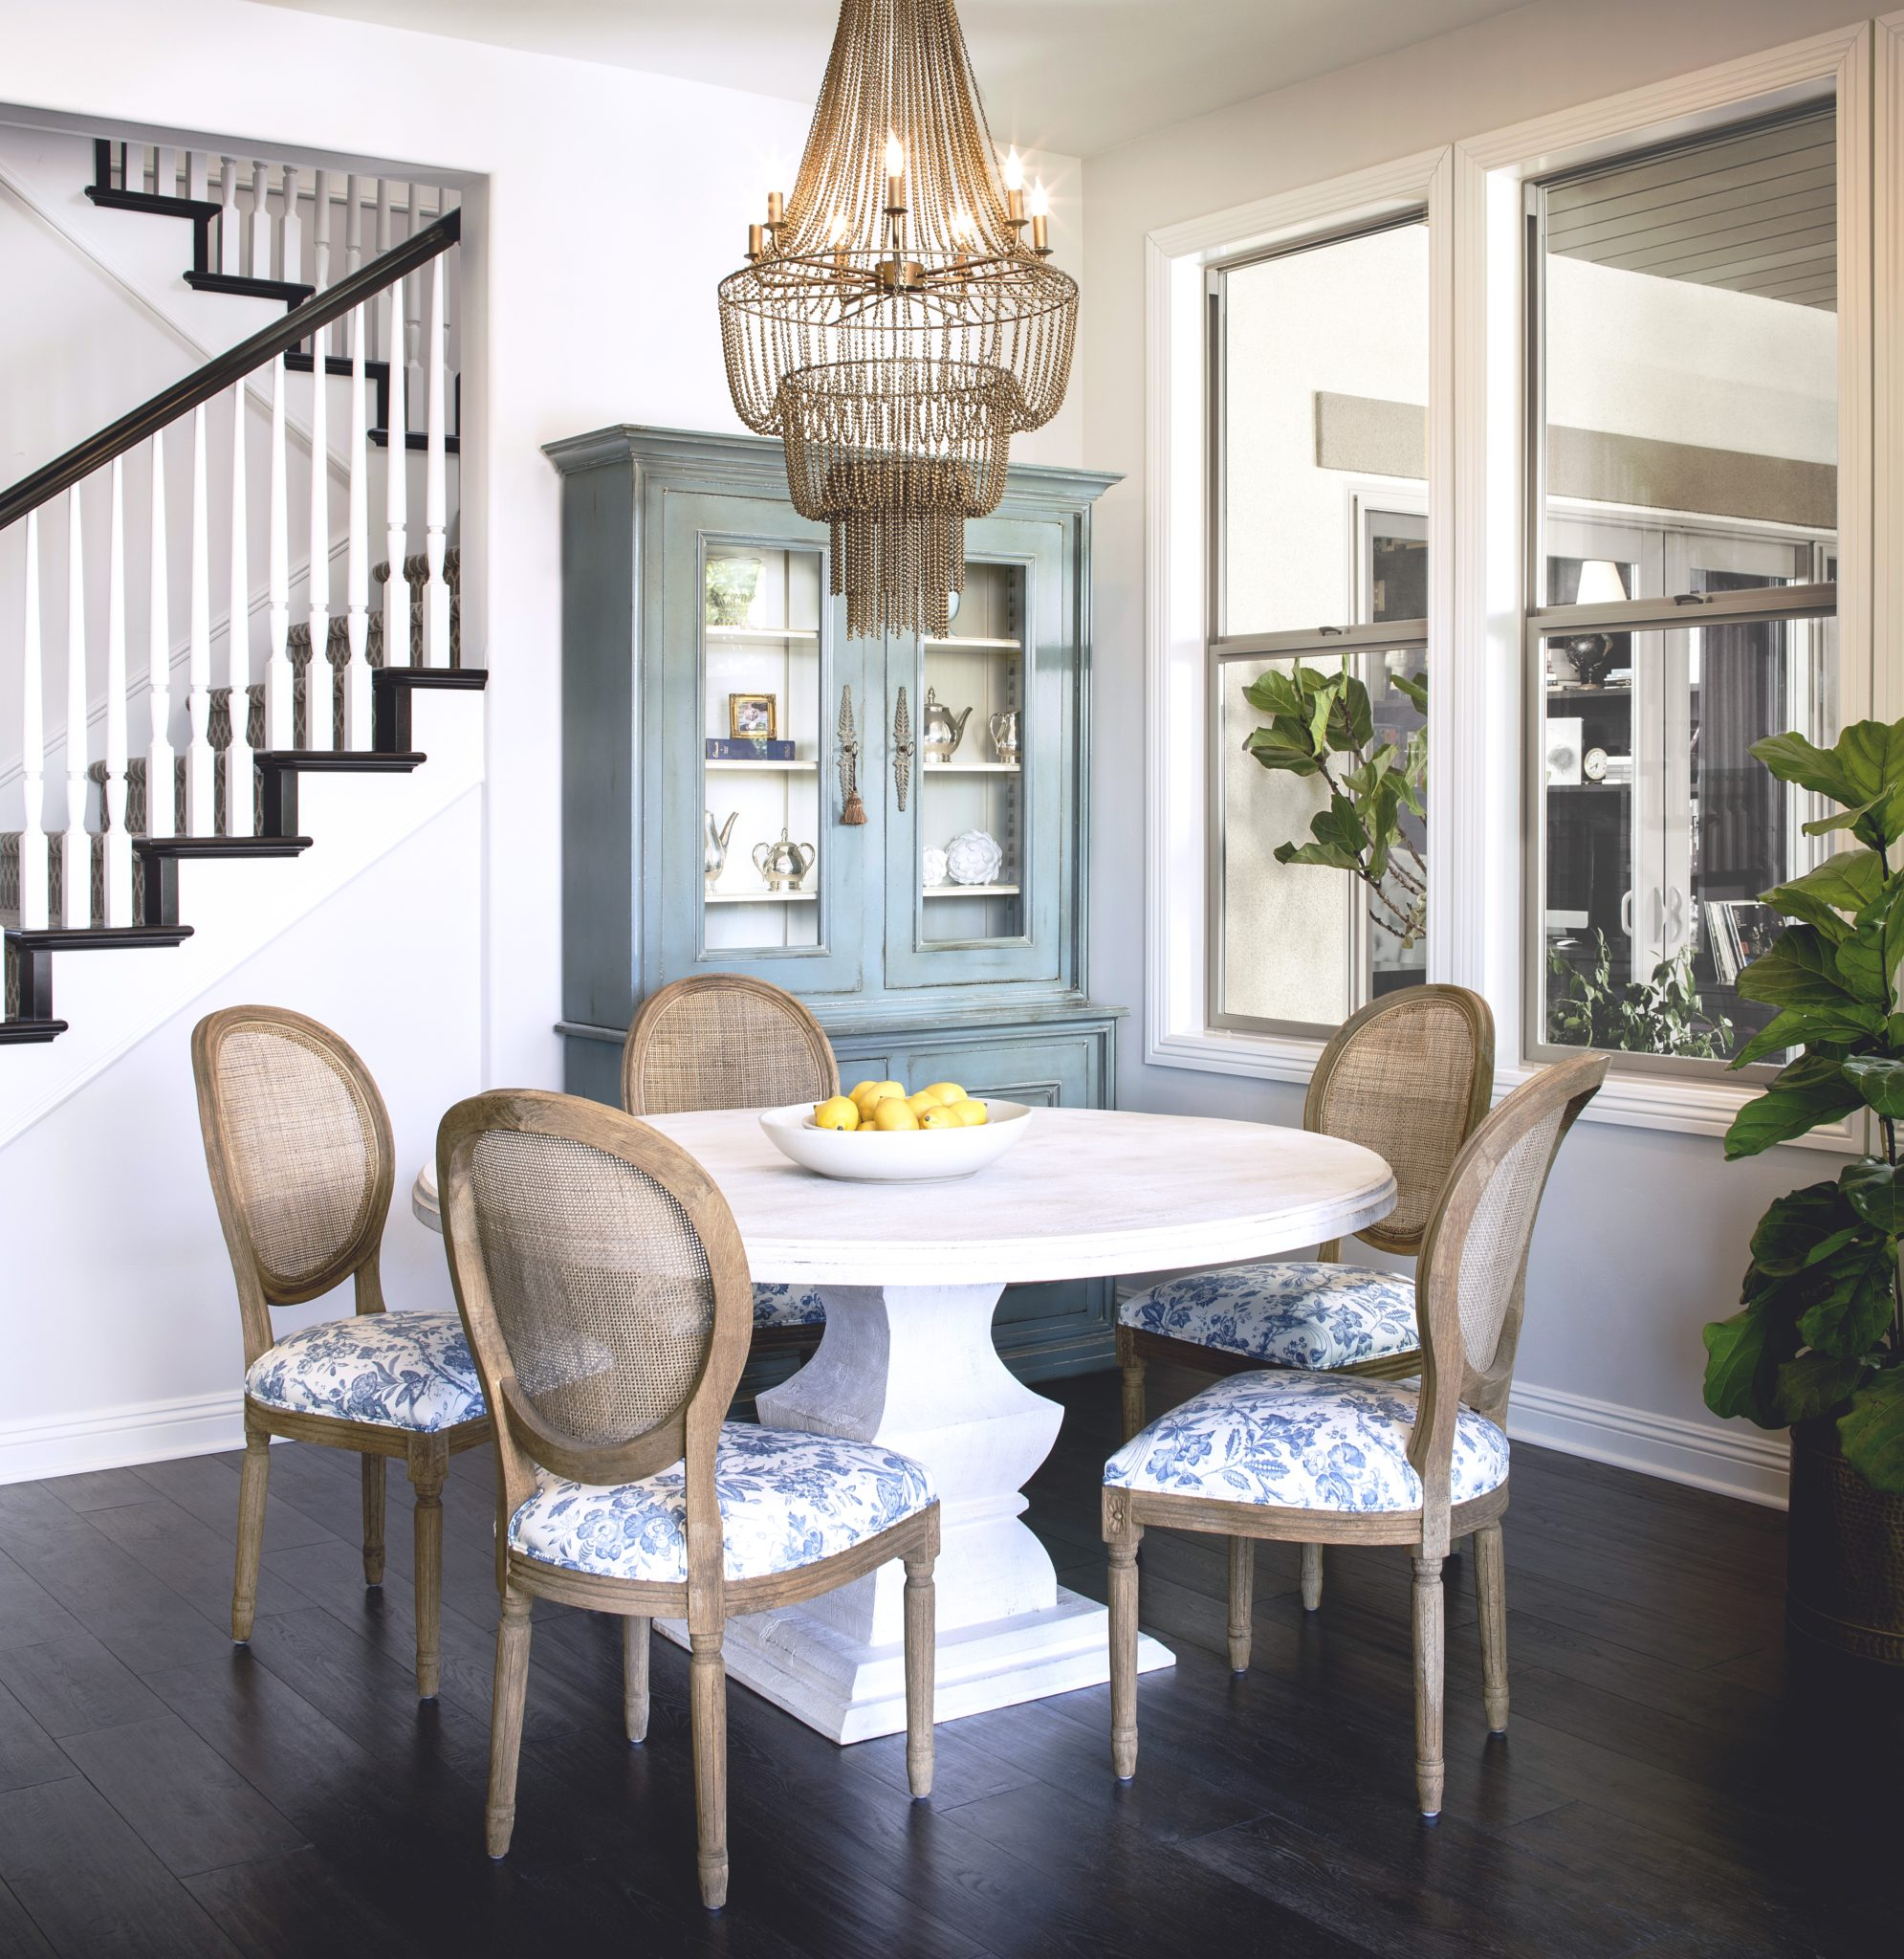 """1. Architectural Details   Any great design begins with the structure. Corine Maggio, founder of CM Natural Designs in Mill Valley, California, points out that architectural elements can introduce a coastal vibe into a room. """"Architectural detailing like molding, wainscoting, and paneling make such a big impact on a space,"""" says Maggio."""